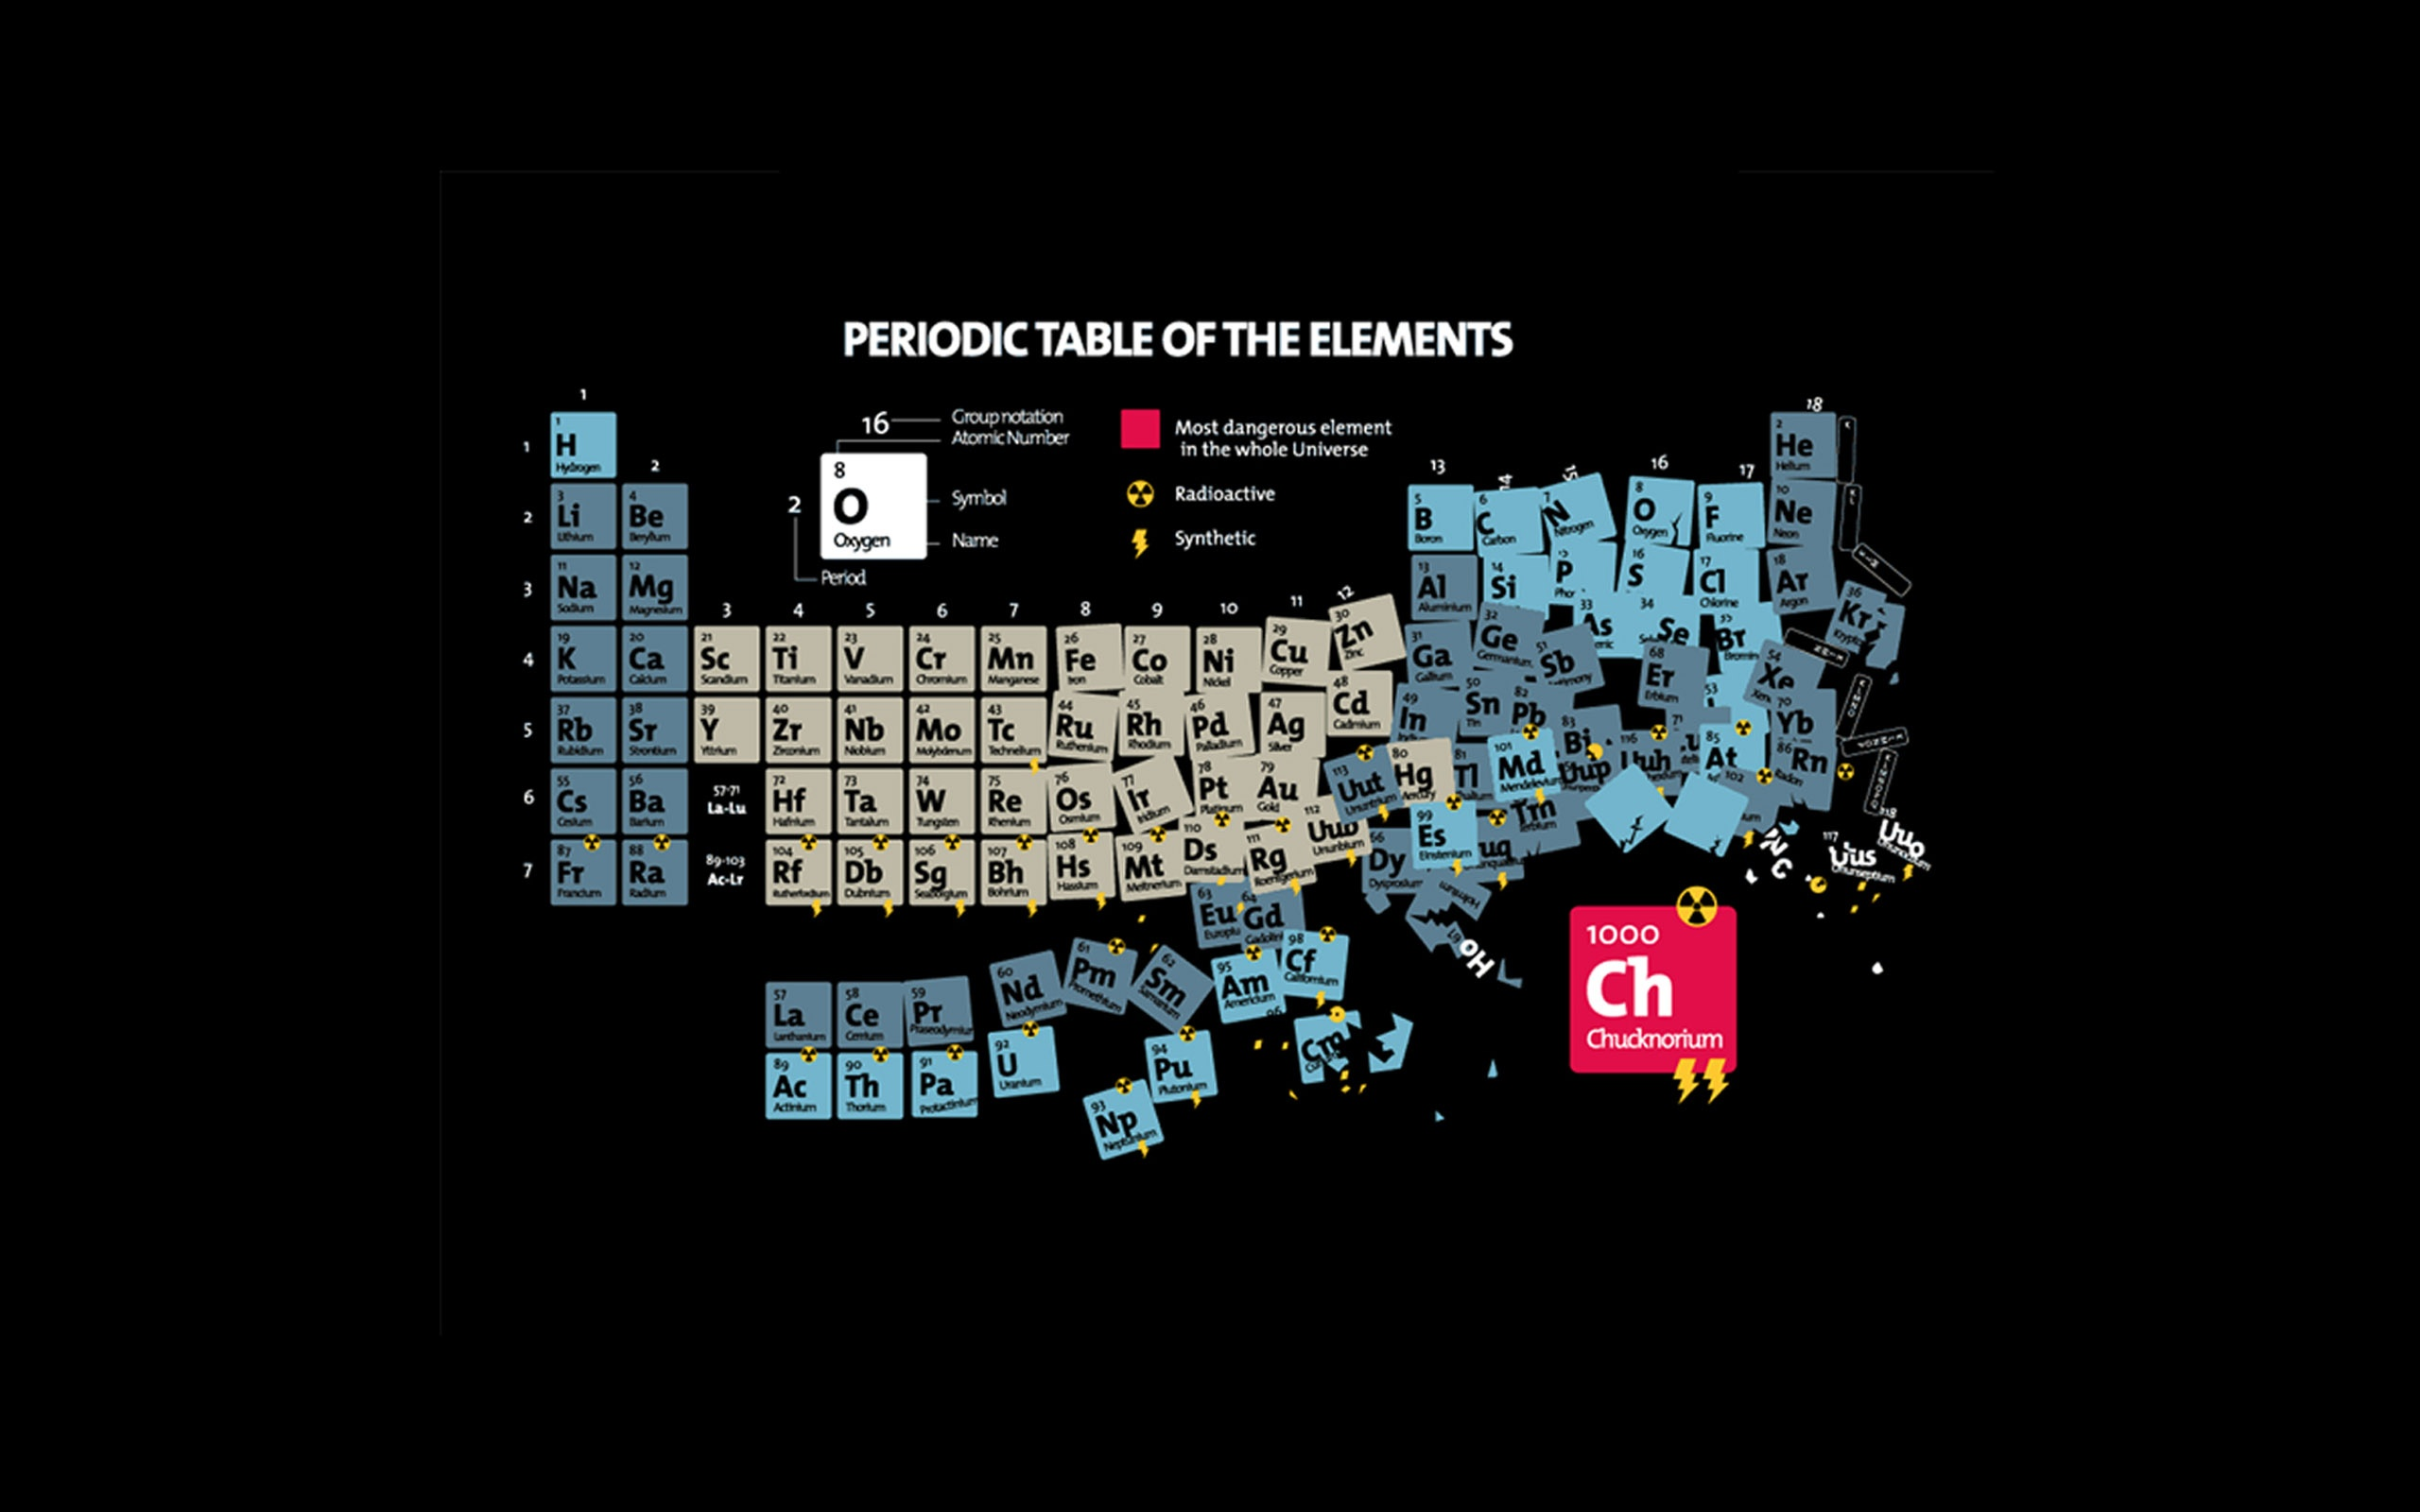 Periodic table of elements wallpapers periodic table of elements image periodic table of elements wallpapers and stock photos urtaz Images